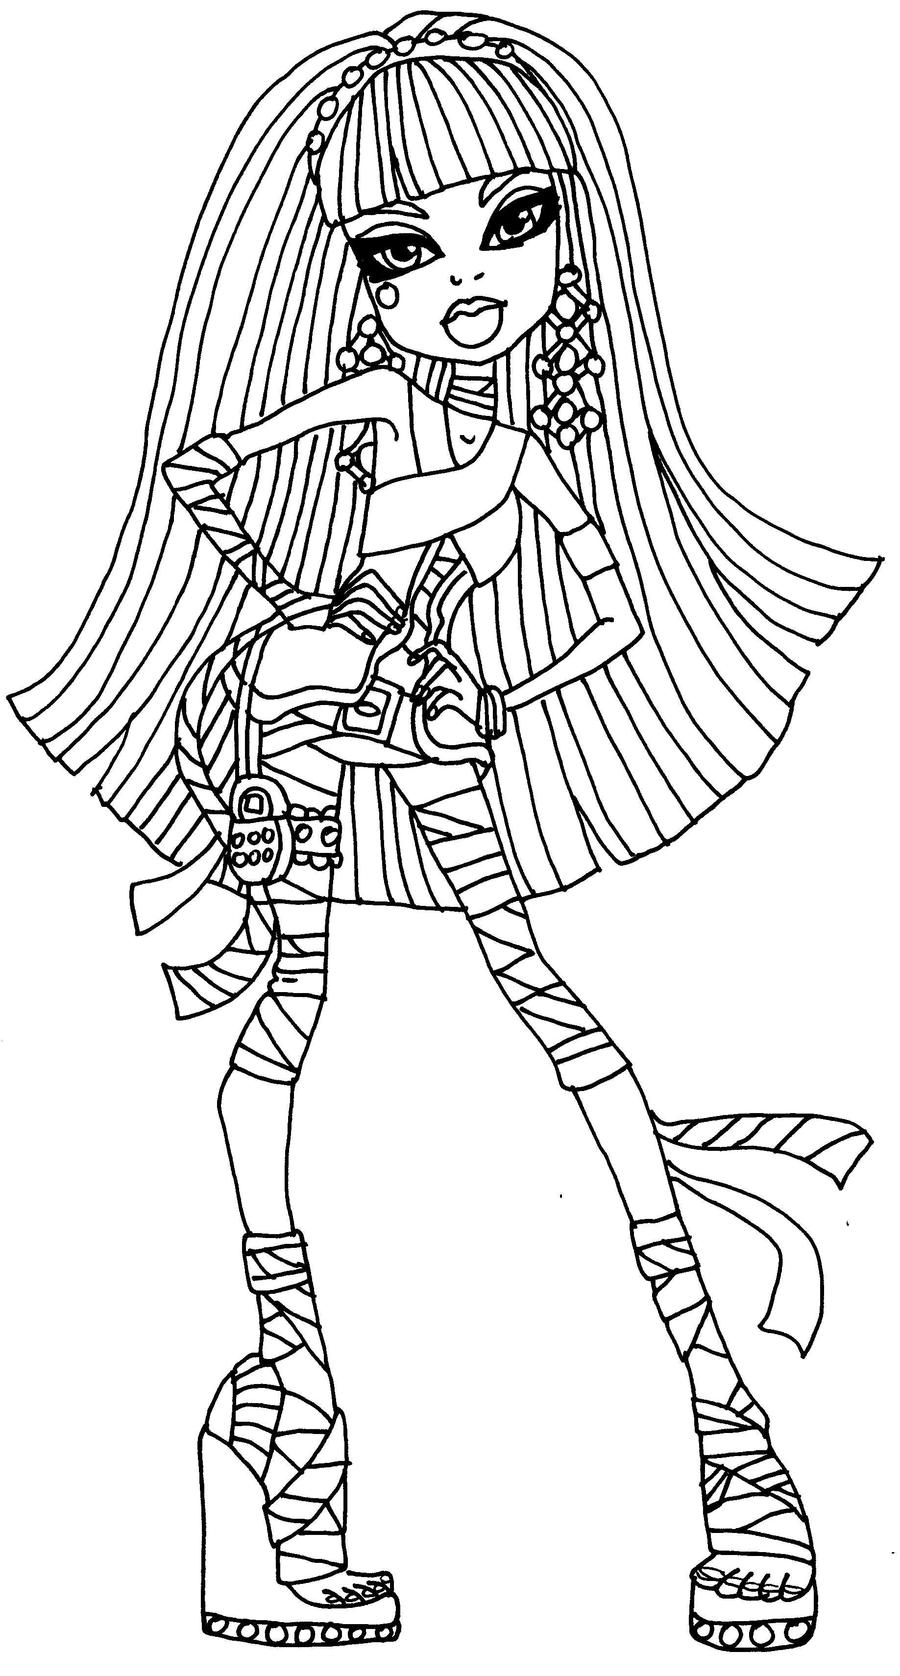 cleo de nile coloring pages - photo#7